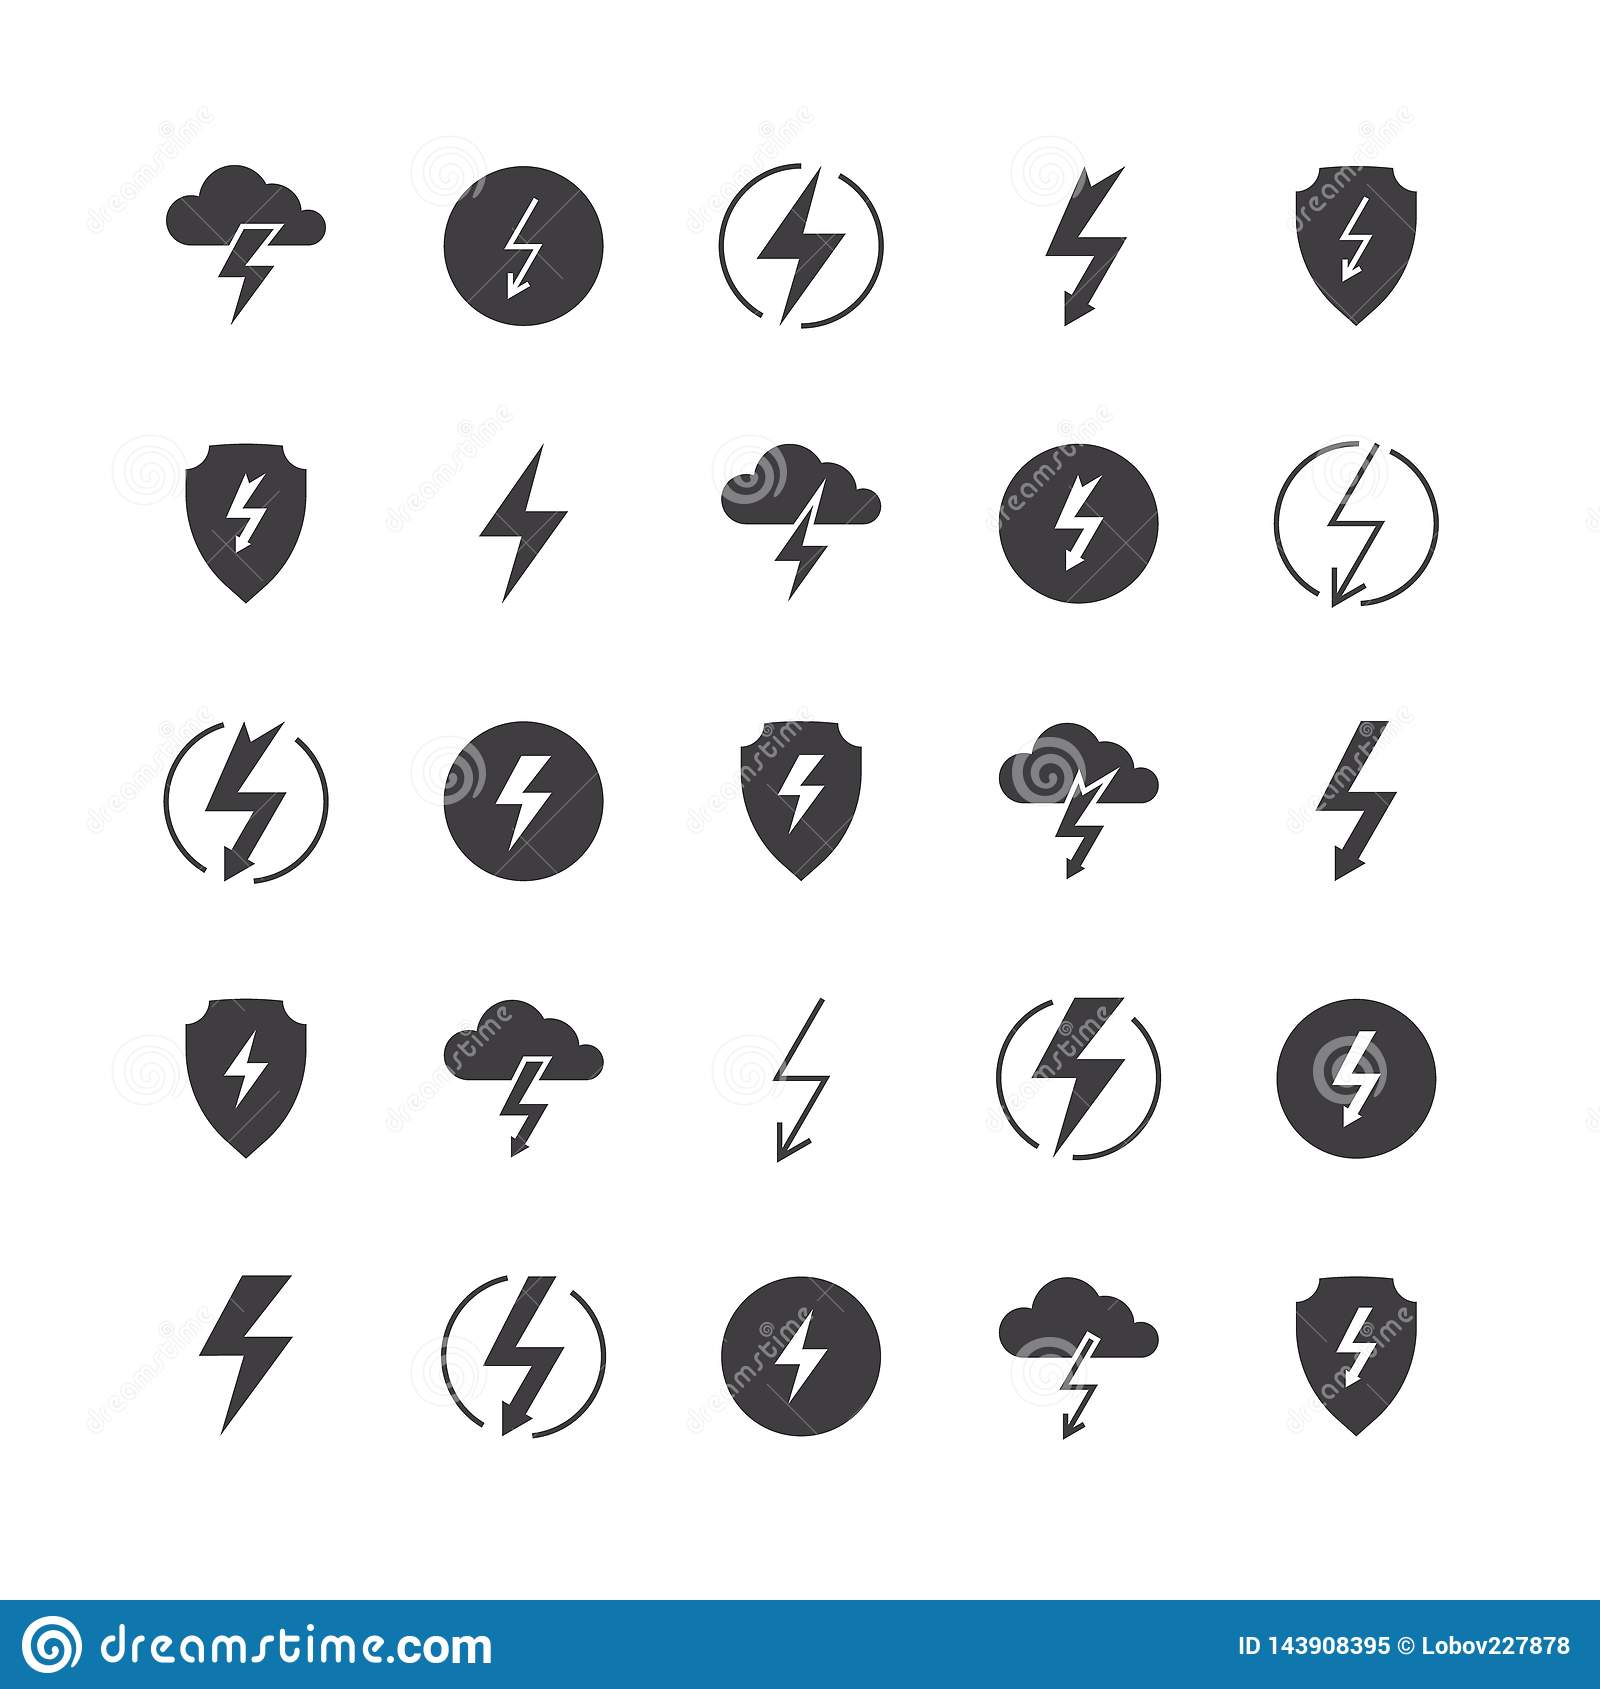 lightning silhouette icons charge thunder vector illustration lightning bolt thunder lighting battery strike line icon stock vector illustration of bolt arrow 143908395 https www dreamstime com lightning silhouette icons charge thunder vector illustration bolt lighting battery strike line icon contact power social image143908395